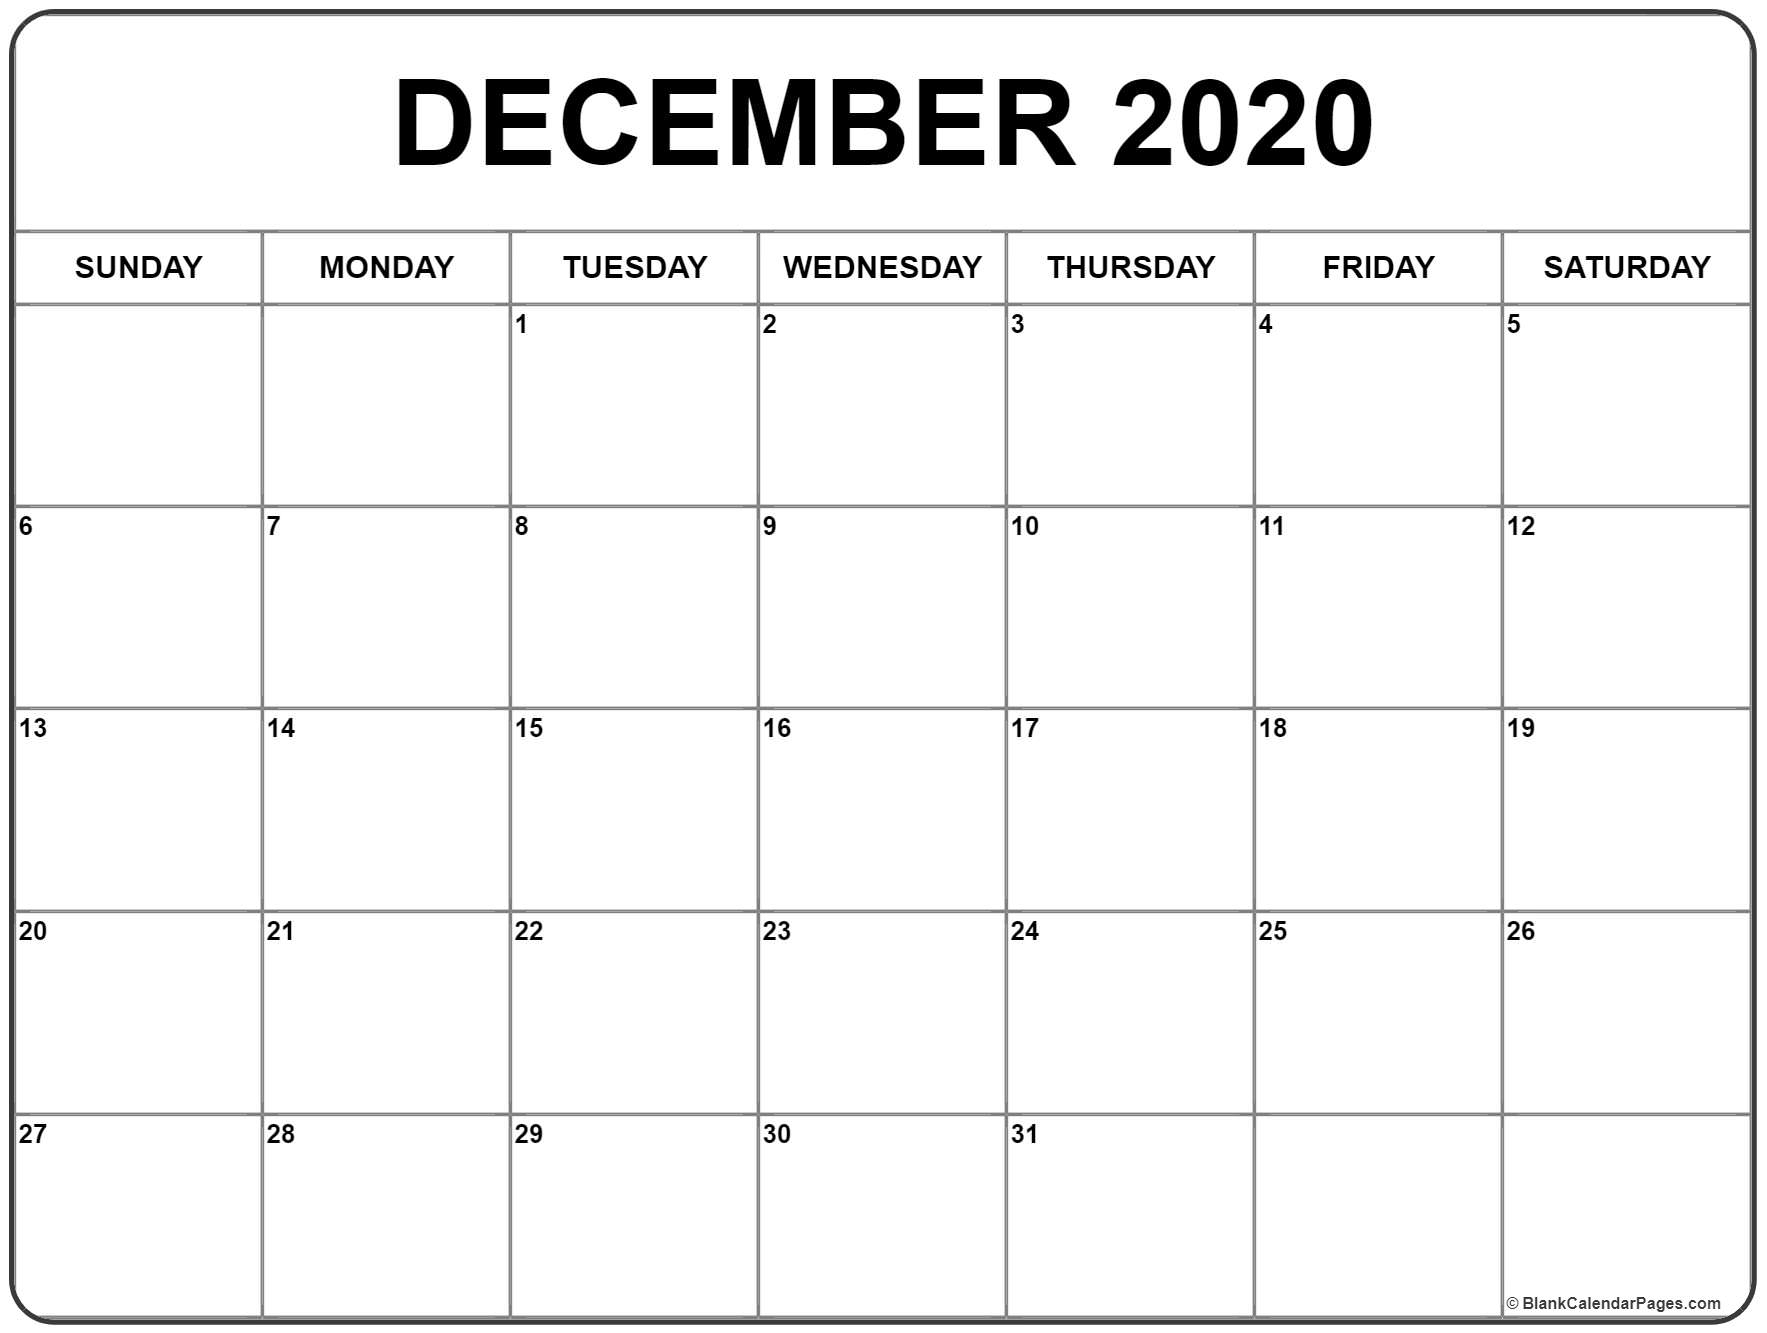 Blank Calendar December 2020  Bolan.horizonconsulting.co intended for 123 Calendars December 2020